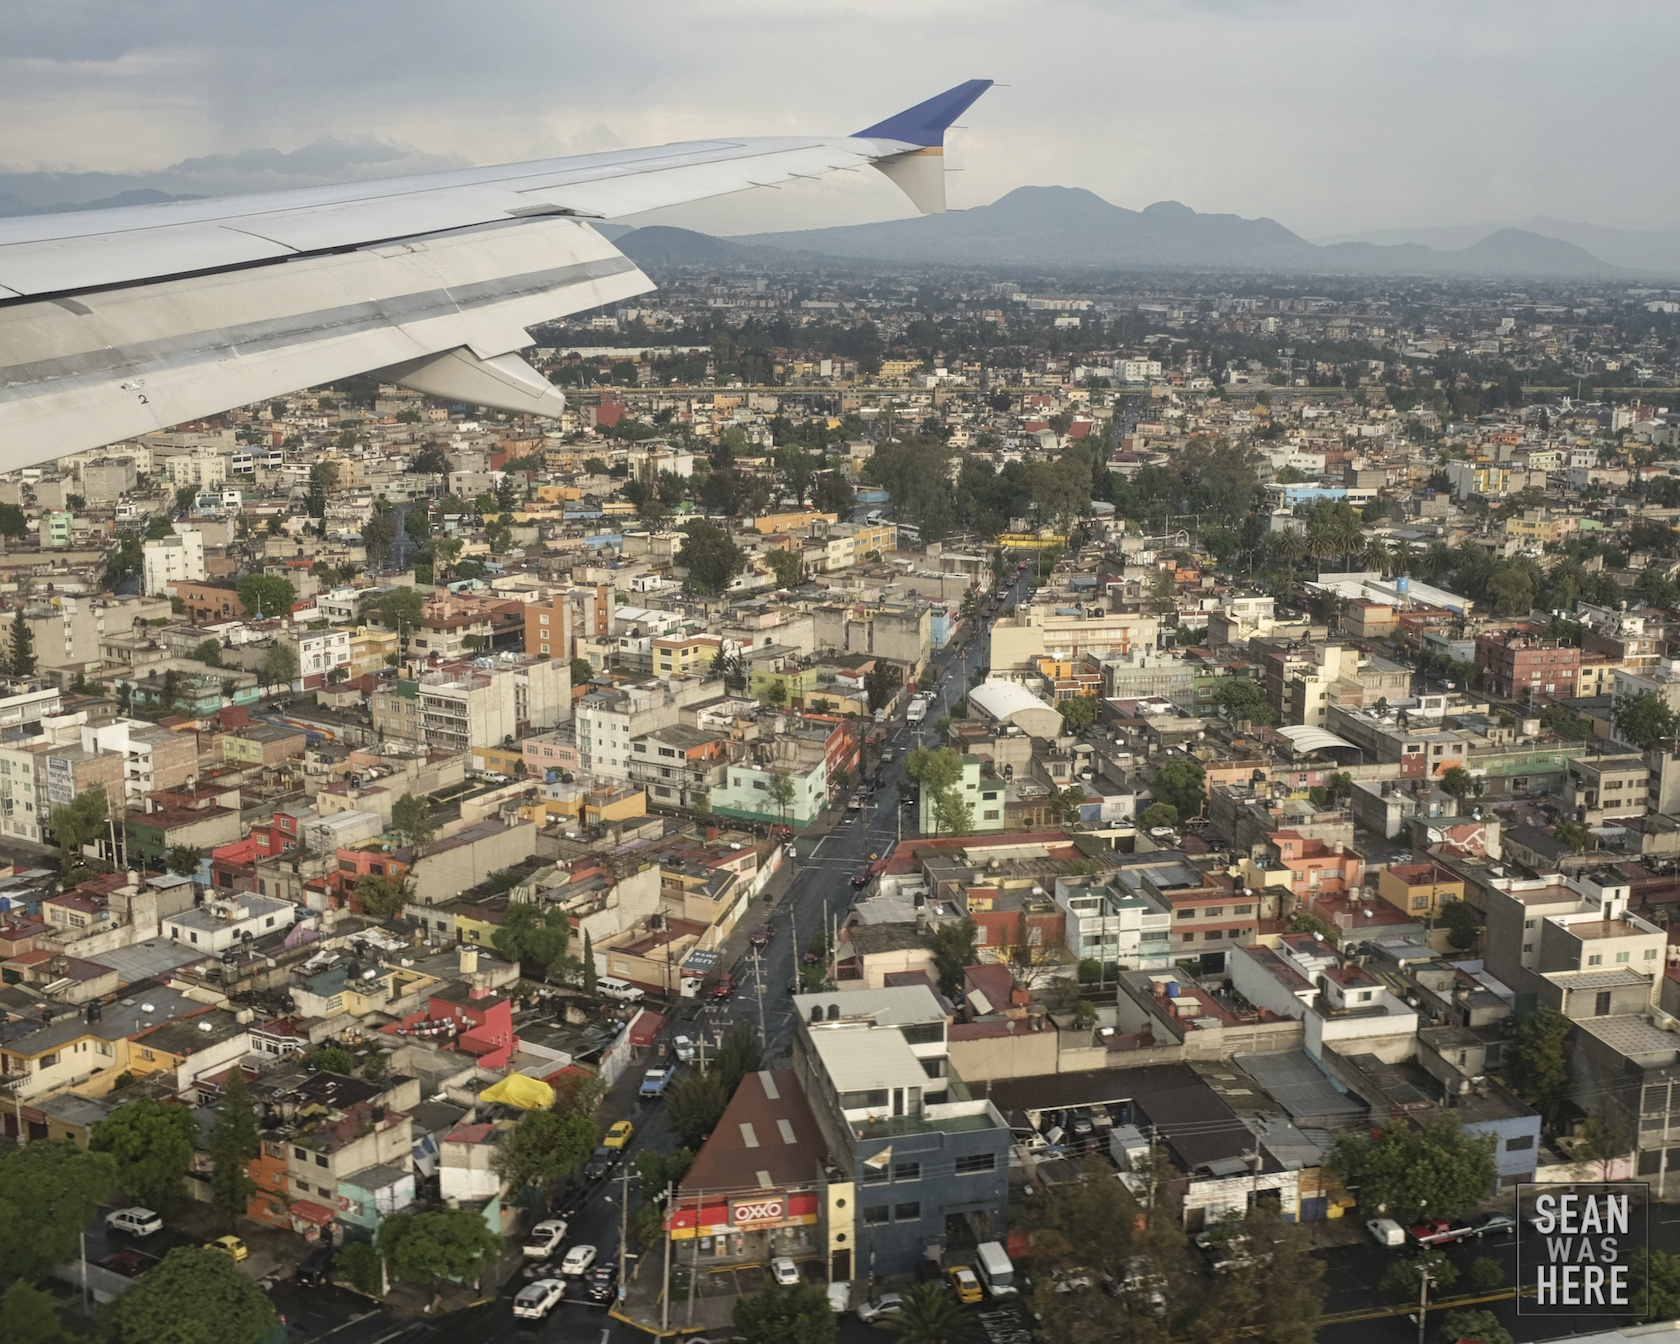 I've left America, again. Mexico City, Mexico